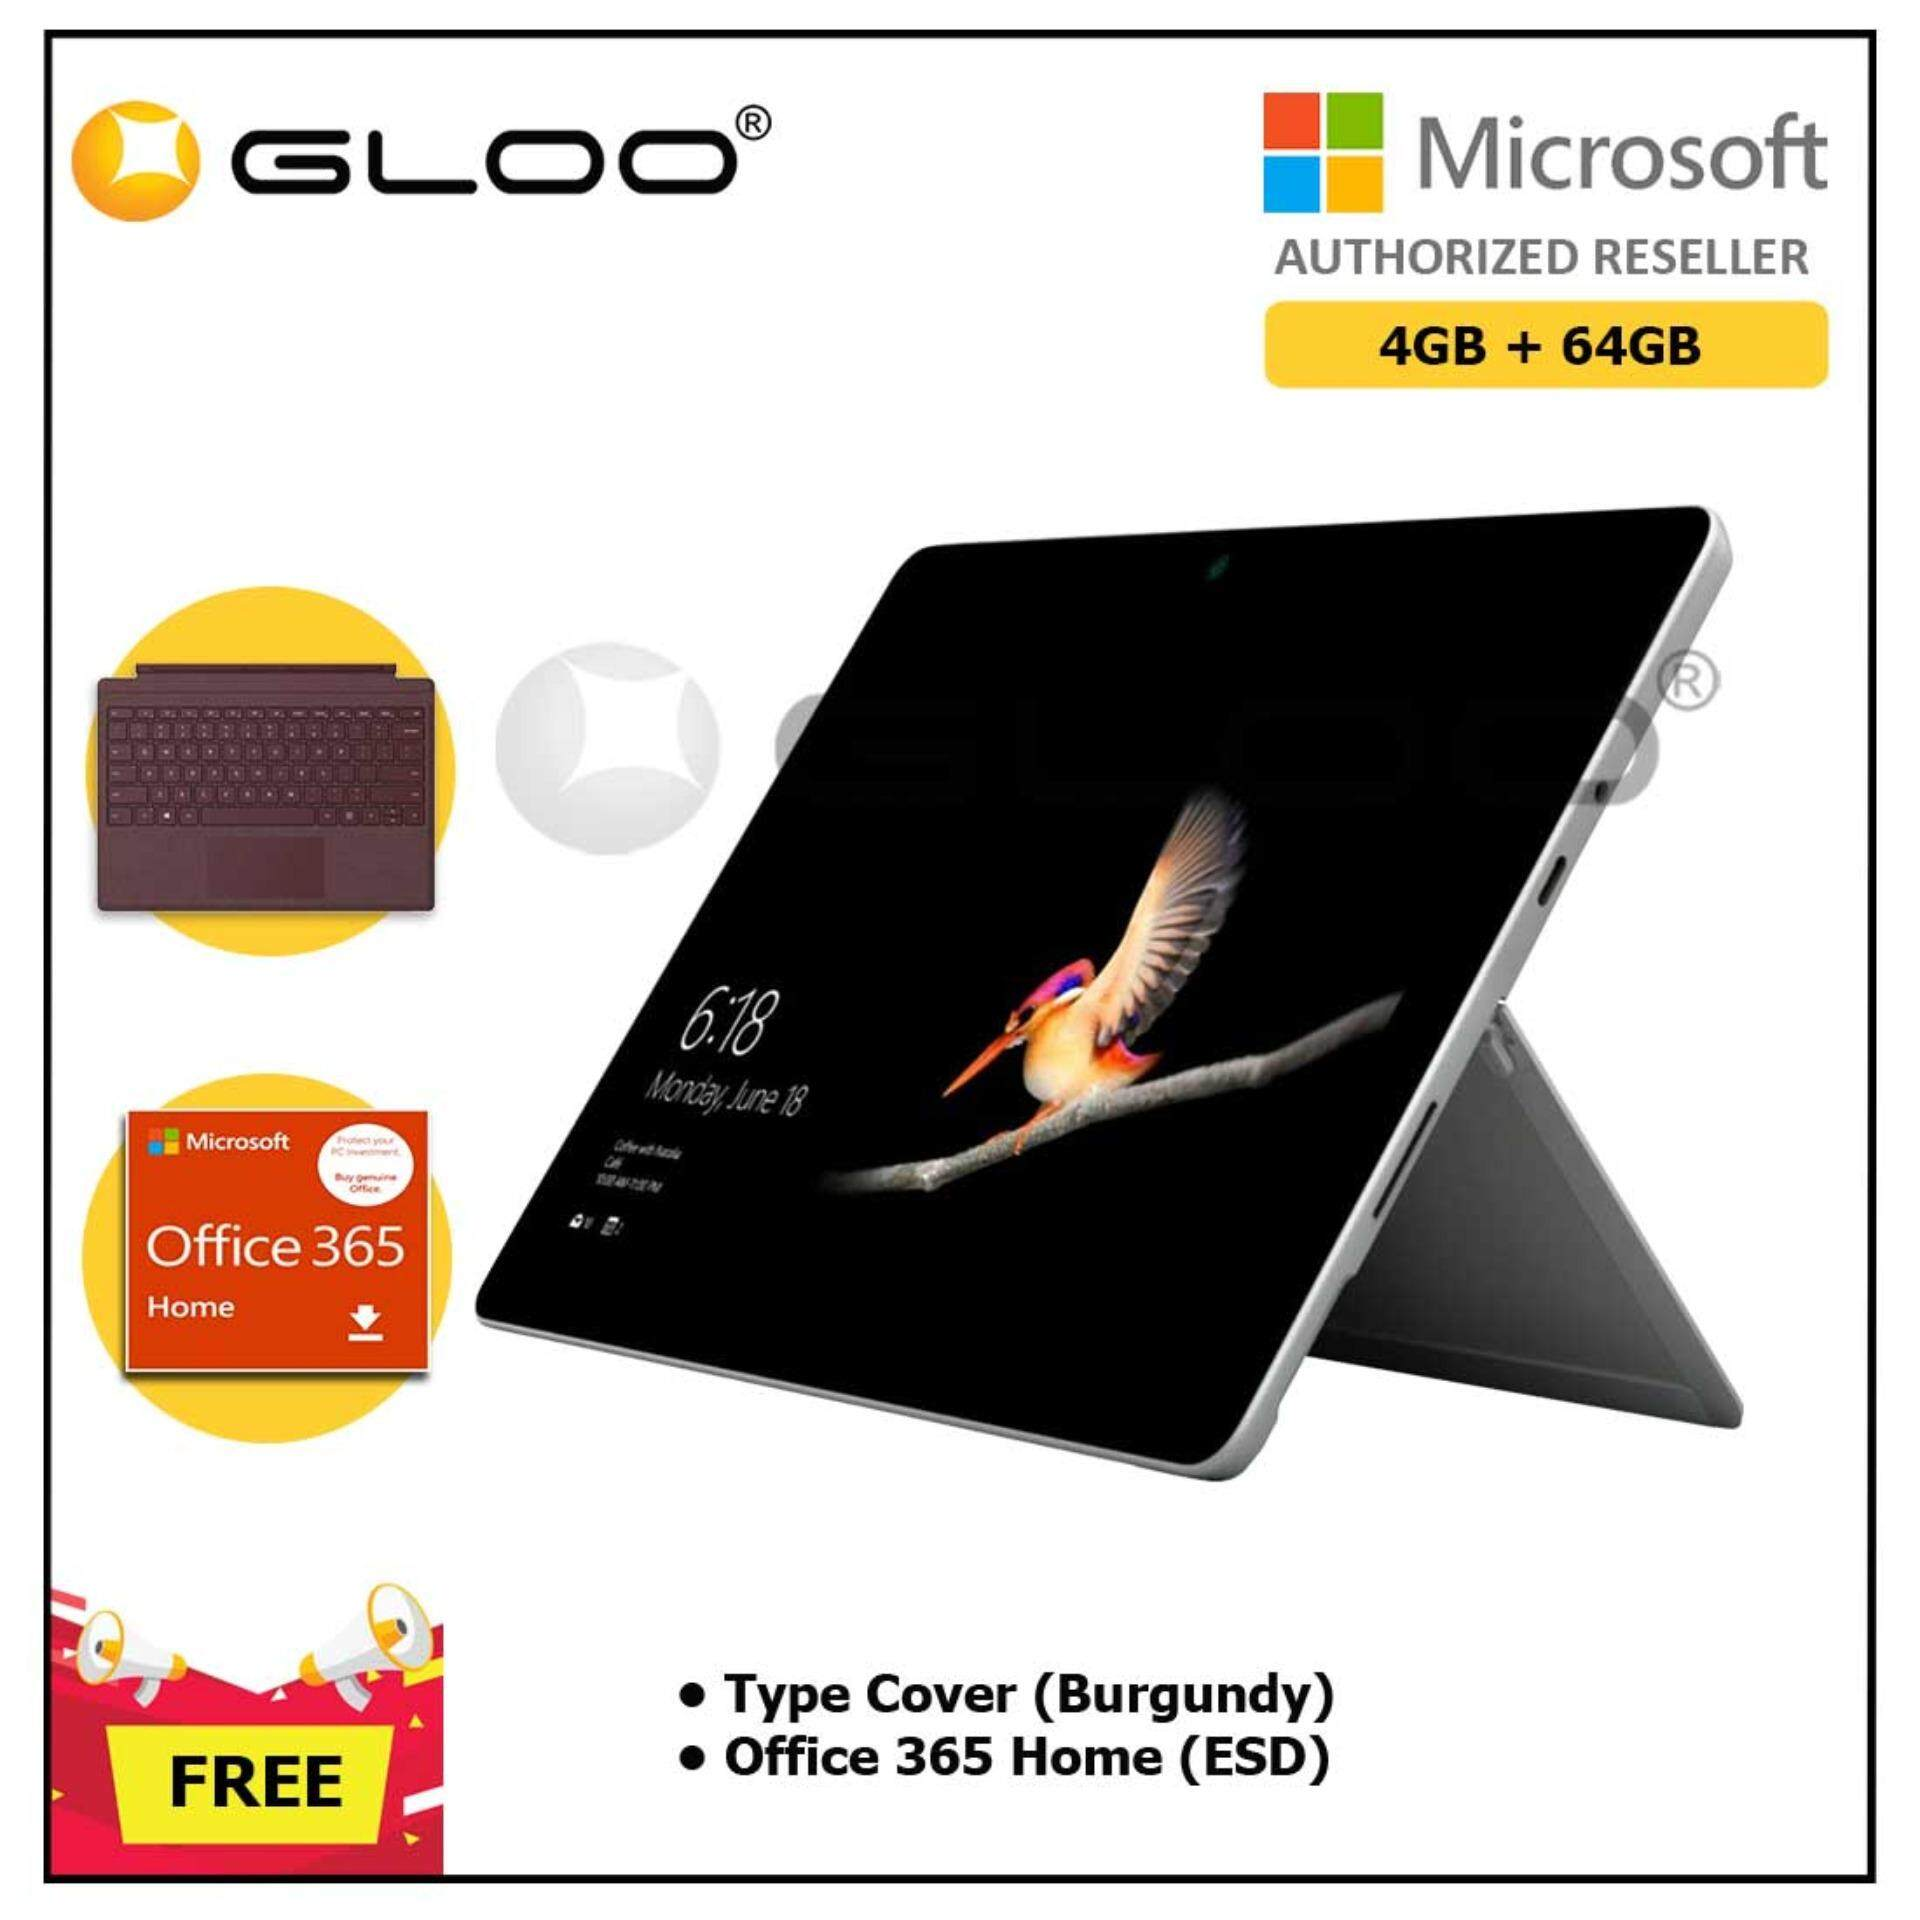 Microsoft Surface Go Y/4GB 64GB + Surface Go Type Cover Burgundy + Office 365 Home ESD Malaysia